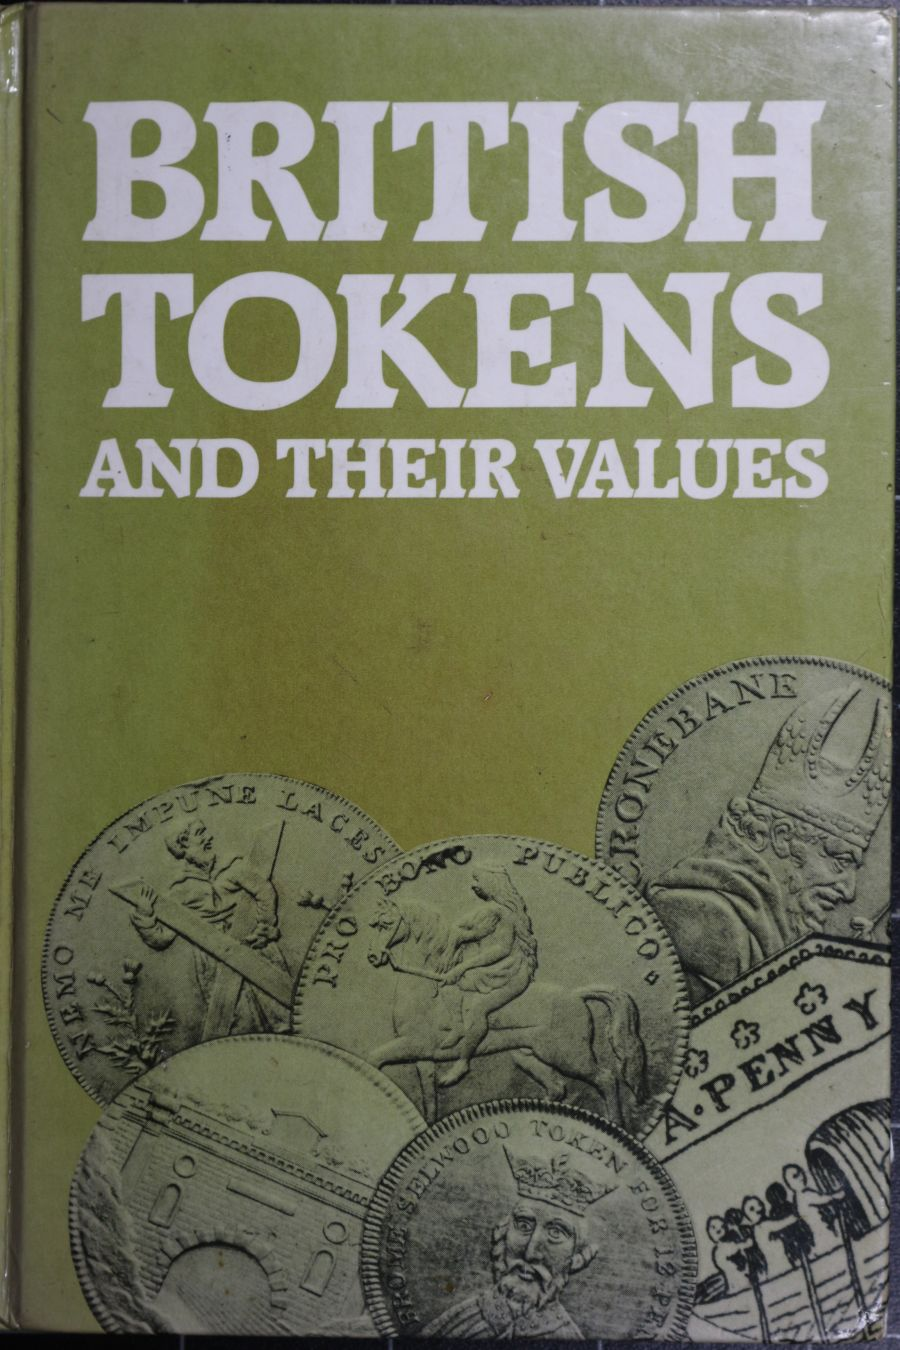 British tokens and their values, Peter Seaby and Monica Bussel